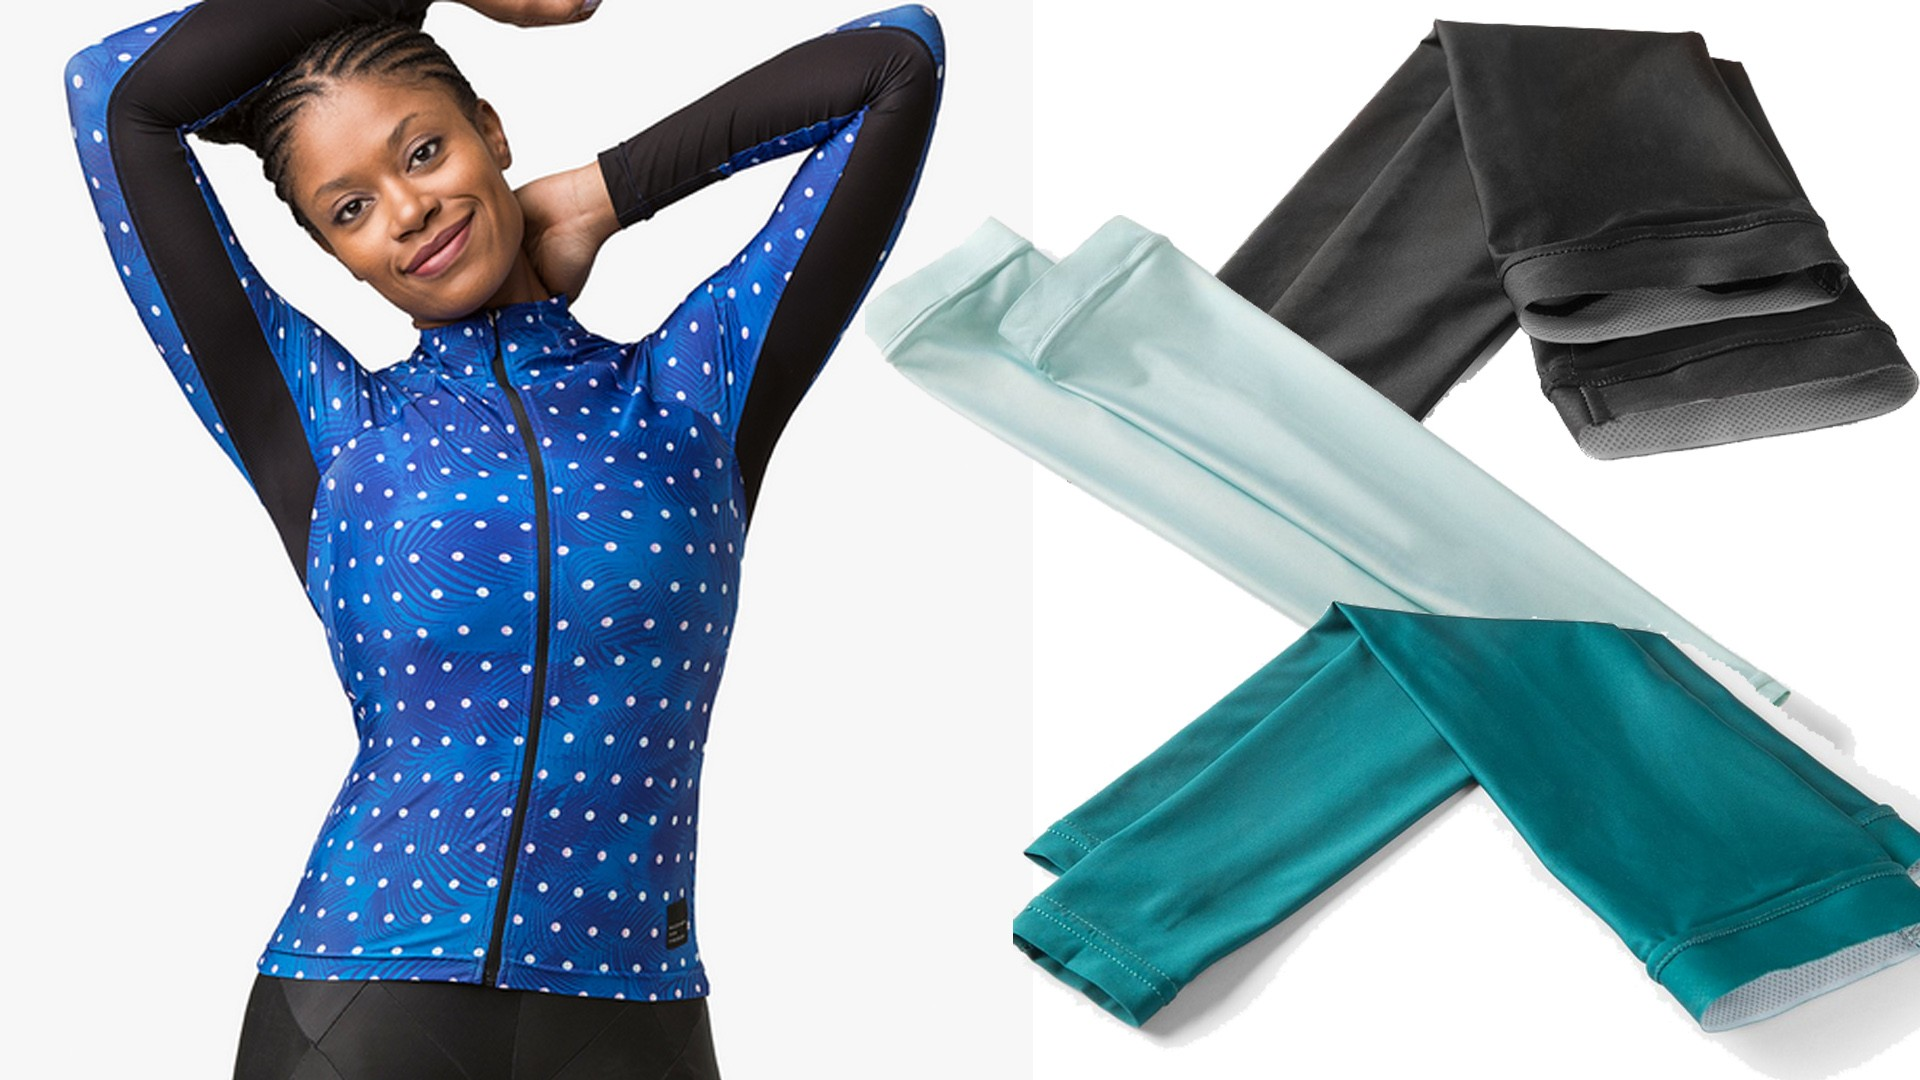 Machines for Freedom offer both arm warmers and longsleeve jerseys with UPF50